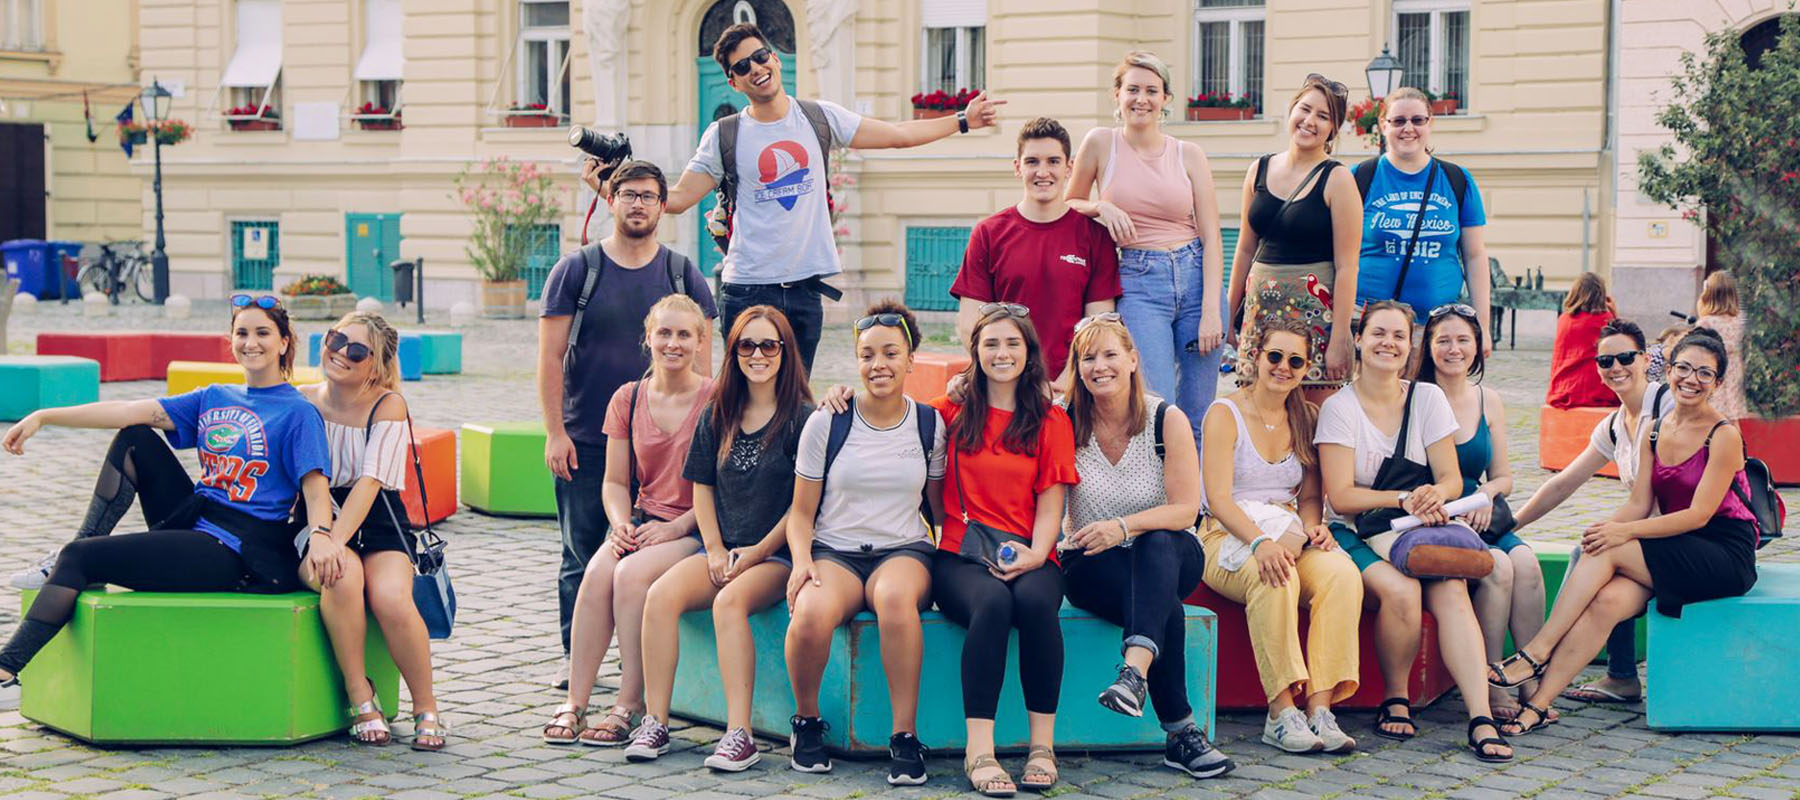 CHECK OUT THE PHOTOS AND VIDEOS OF RECONNECT HUNGARY 2018